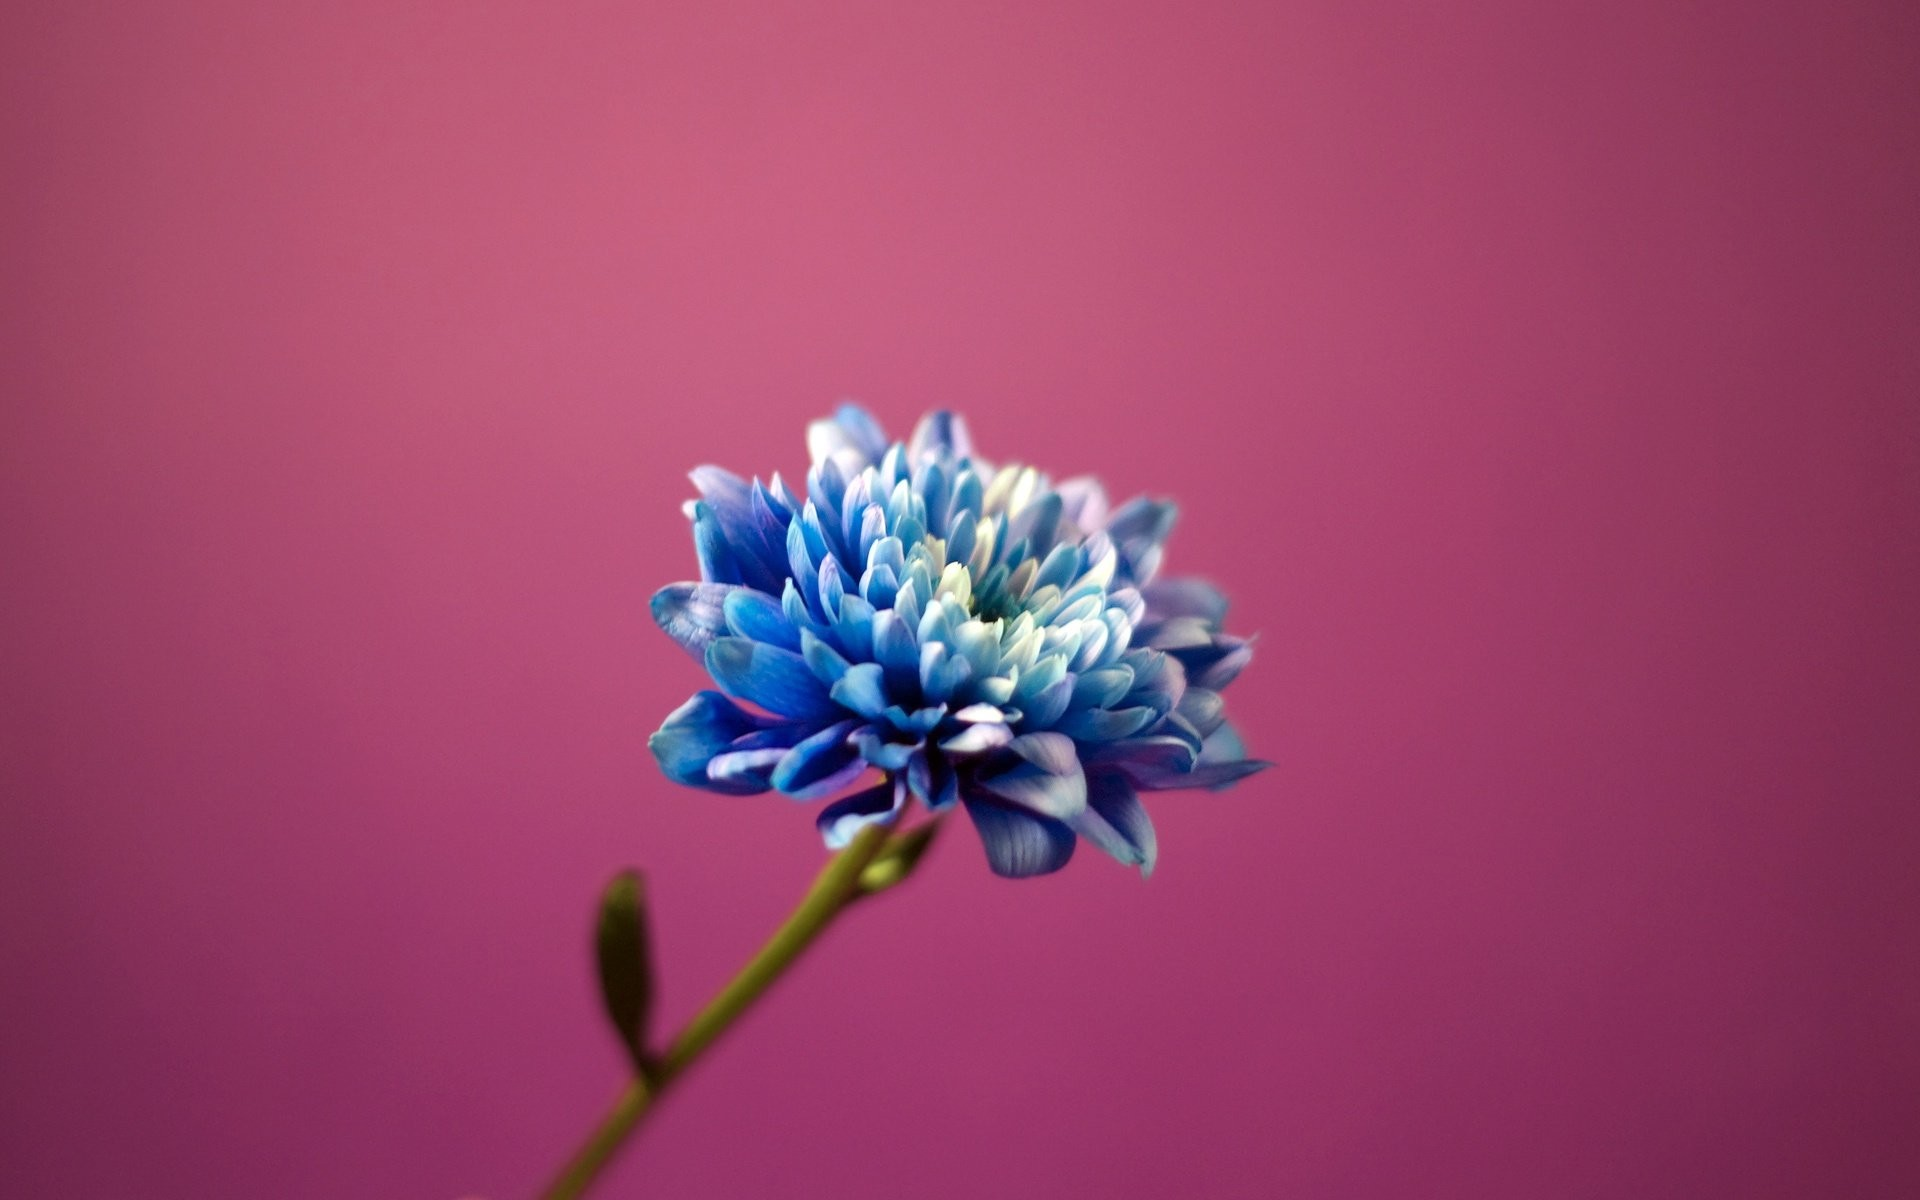 1920x1200 Small Blue Flowers For Blue Purple Wallpaper Flowers Background Pictures  Against Small Blurred Flower